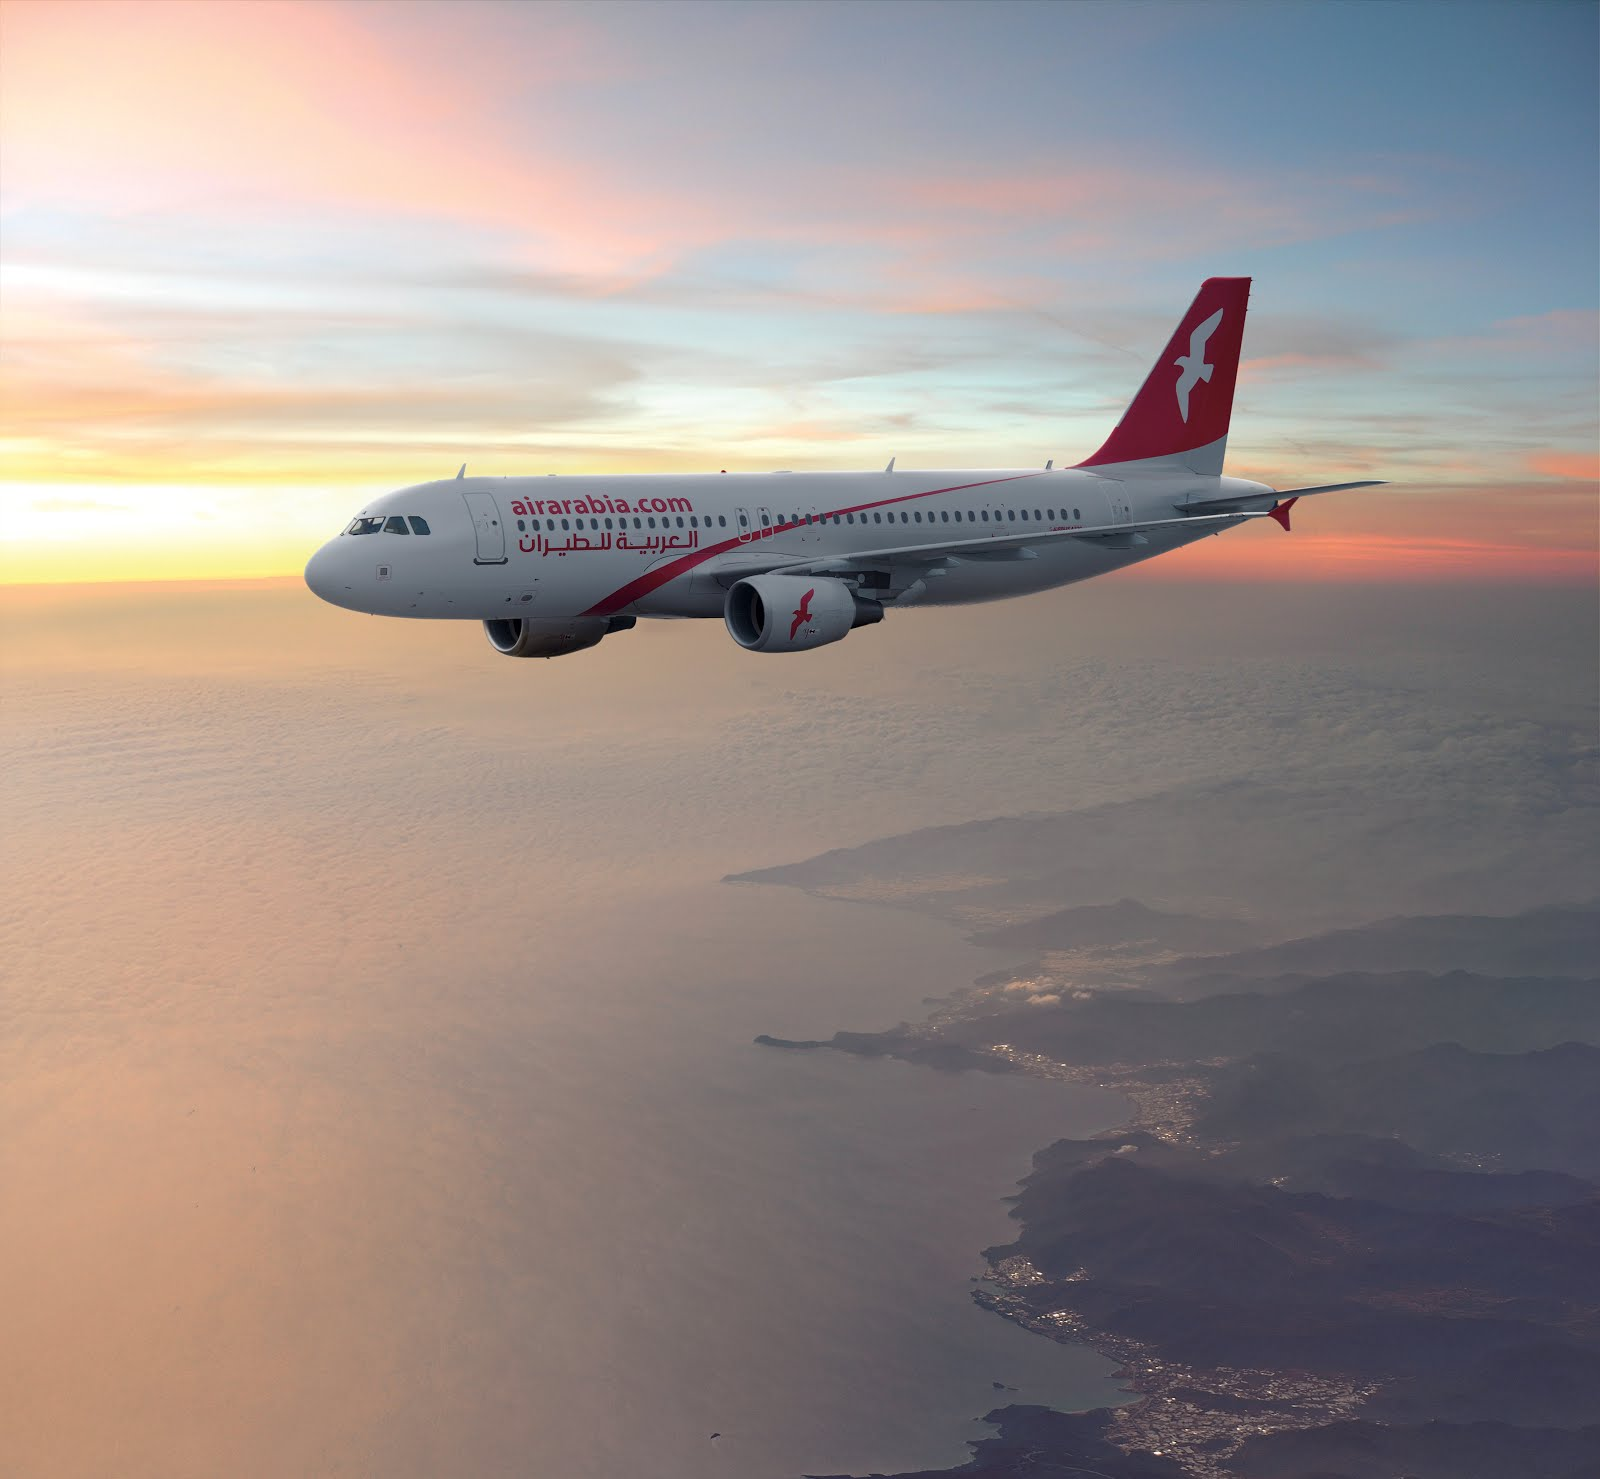 Air Arabia - low cost carrier for Middle East and North Africa